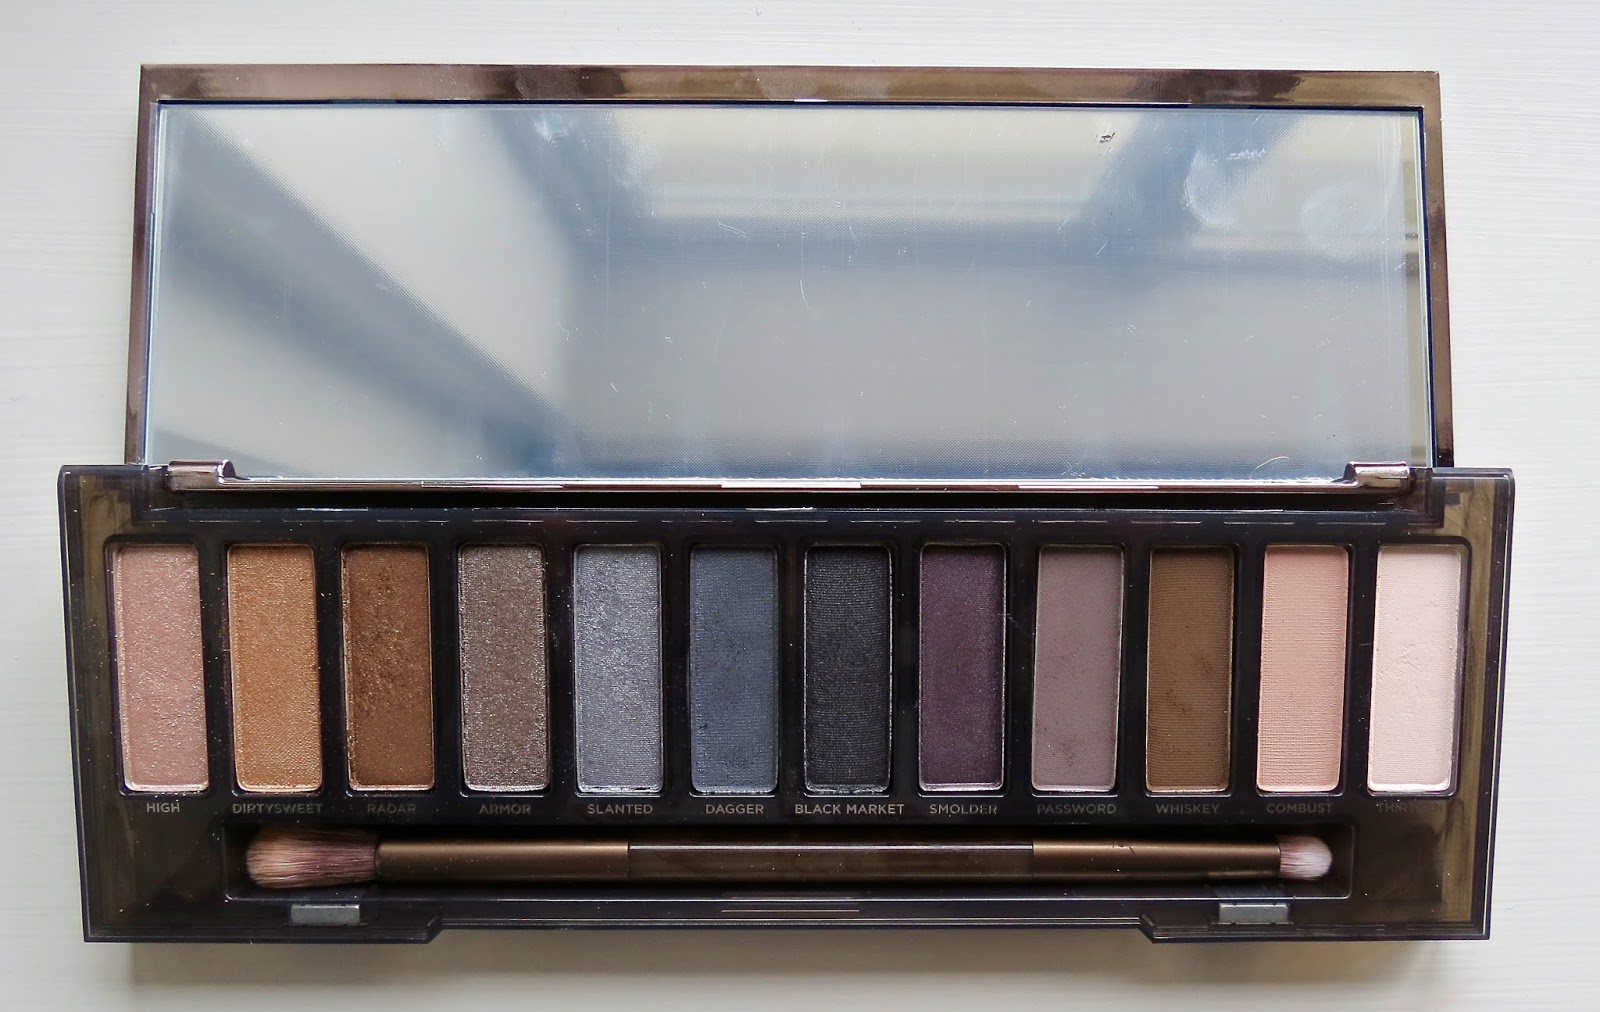 Laura Lucie Urban Decay Naked Smoky Palette Review Eyeshadow From Left To Right High Dirtysweet Radar Armor Slanted Dagger